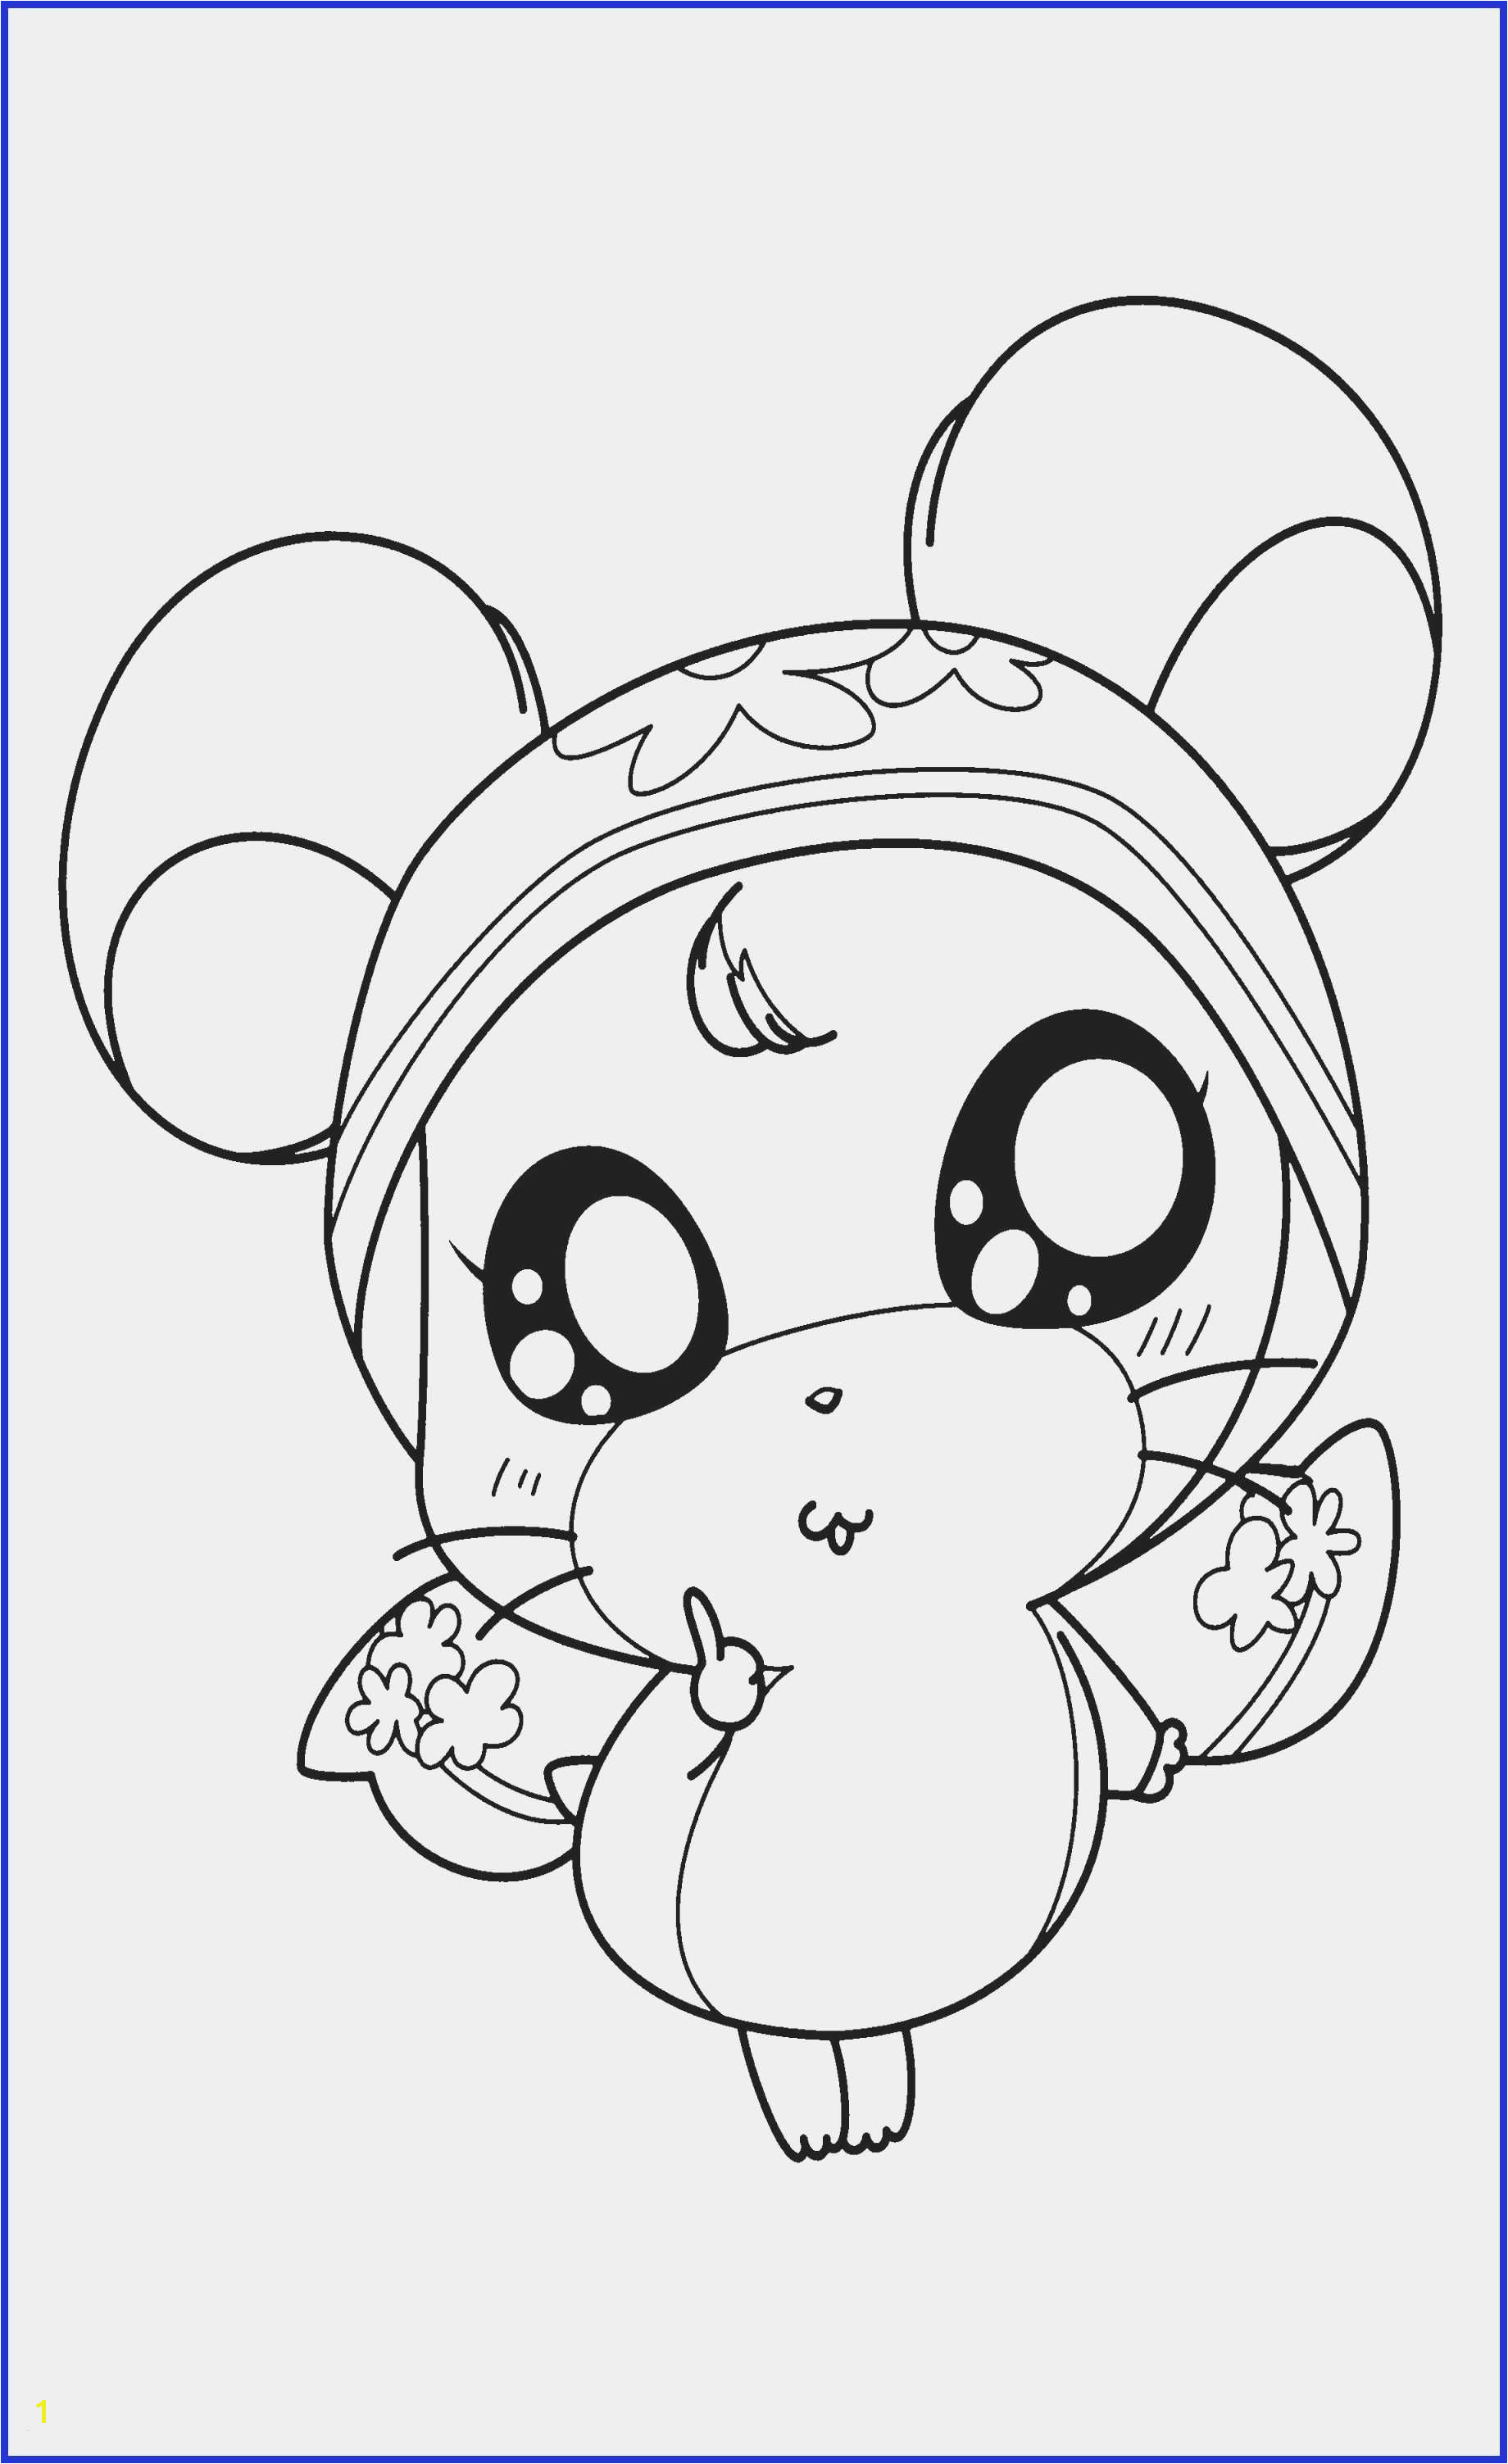 Square Coloring Pages Awesome Free Coloring Pages New Coloring Pages Amazing Coloring Page 0d Square